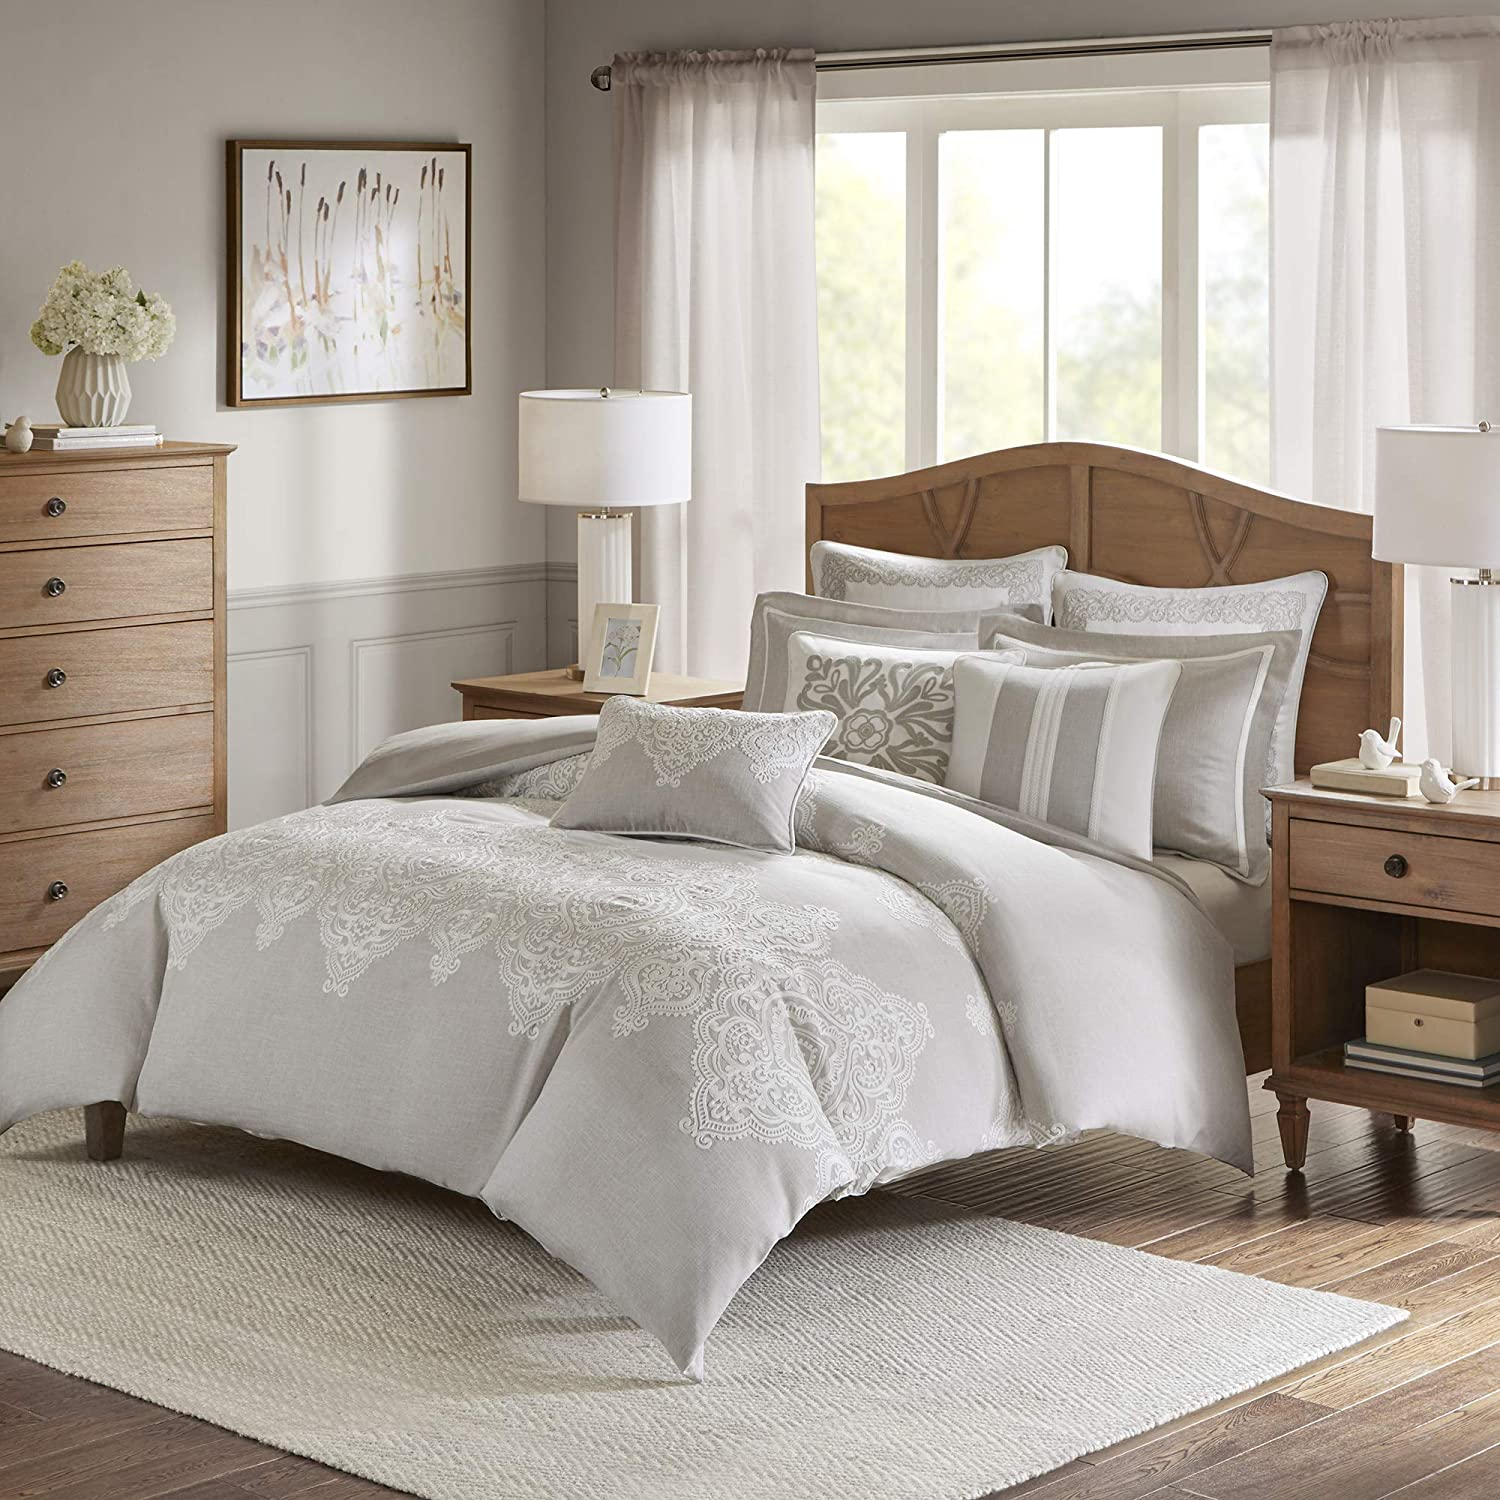 MADISON PARK SIGNATURE Barely There 9 Piece Comforter Set for Bedroom Damask Pattern Embroidery, King, Natural